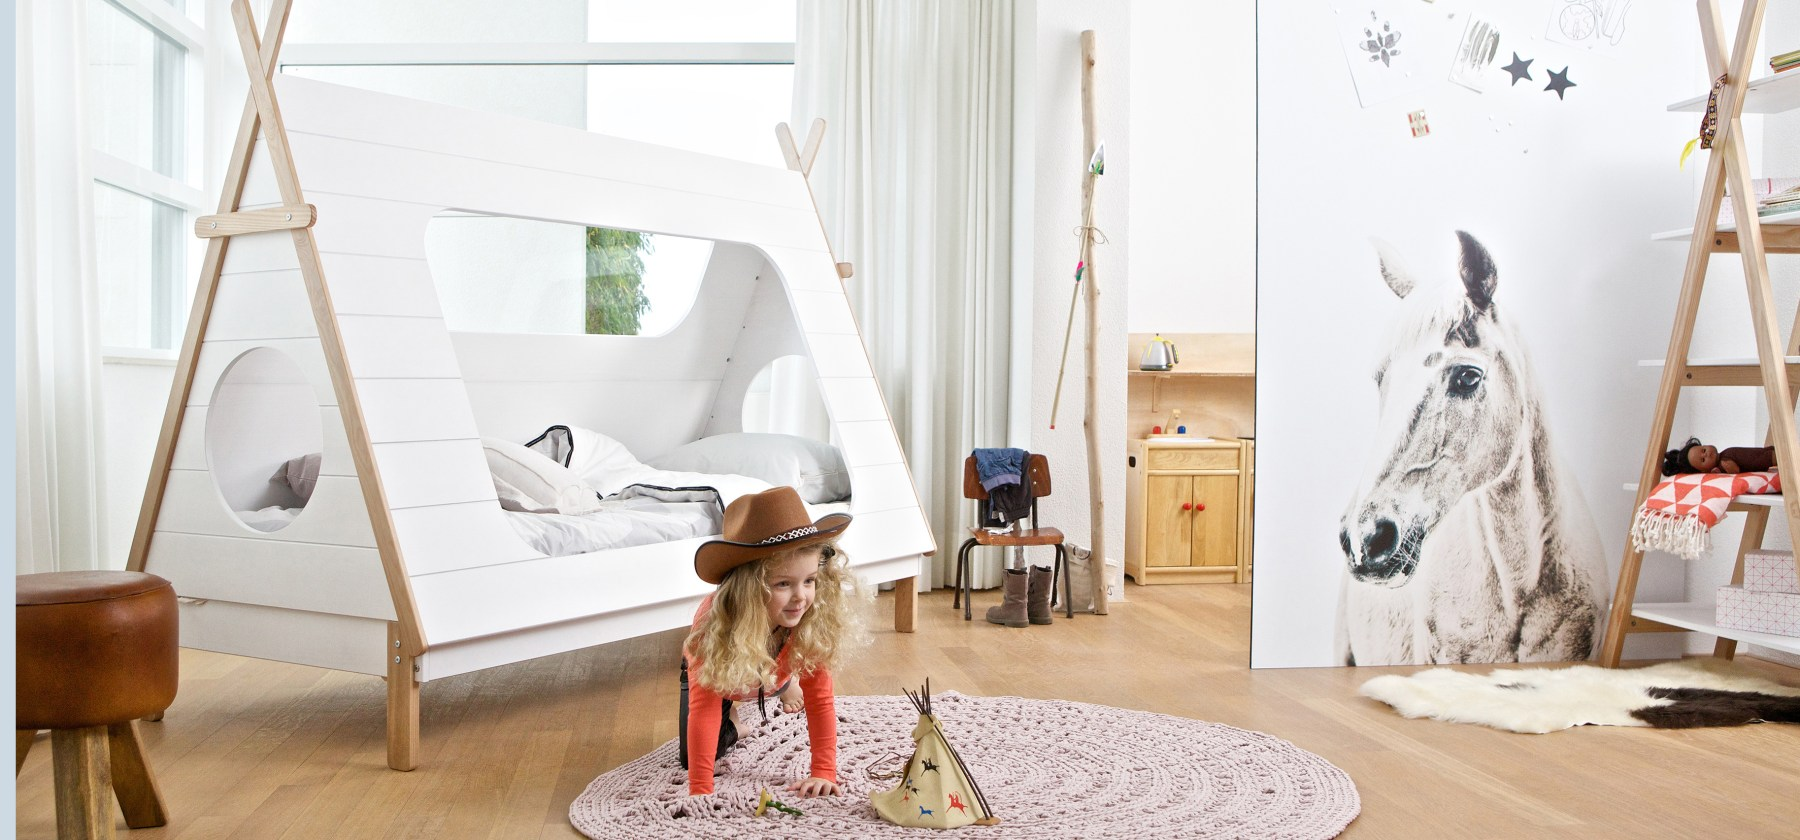 !tipi_bed_lifestyle